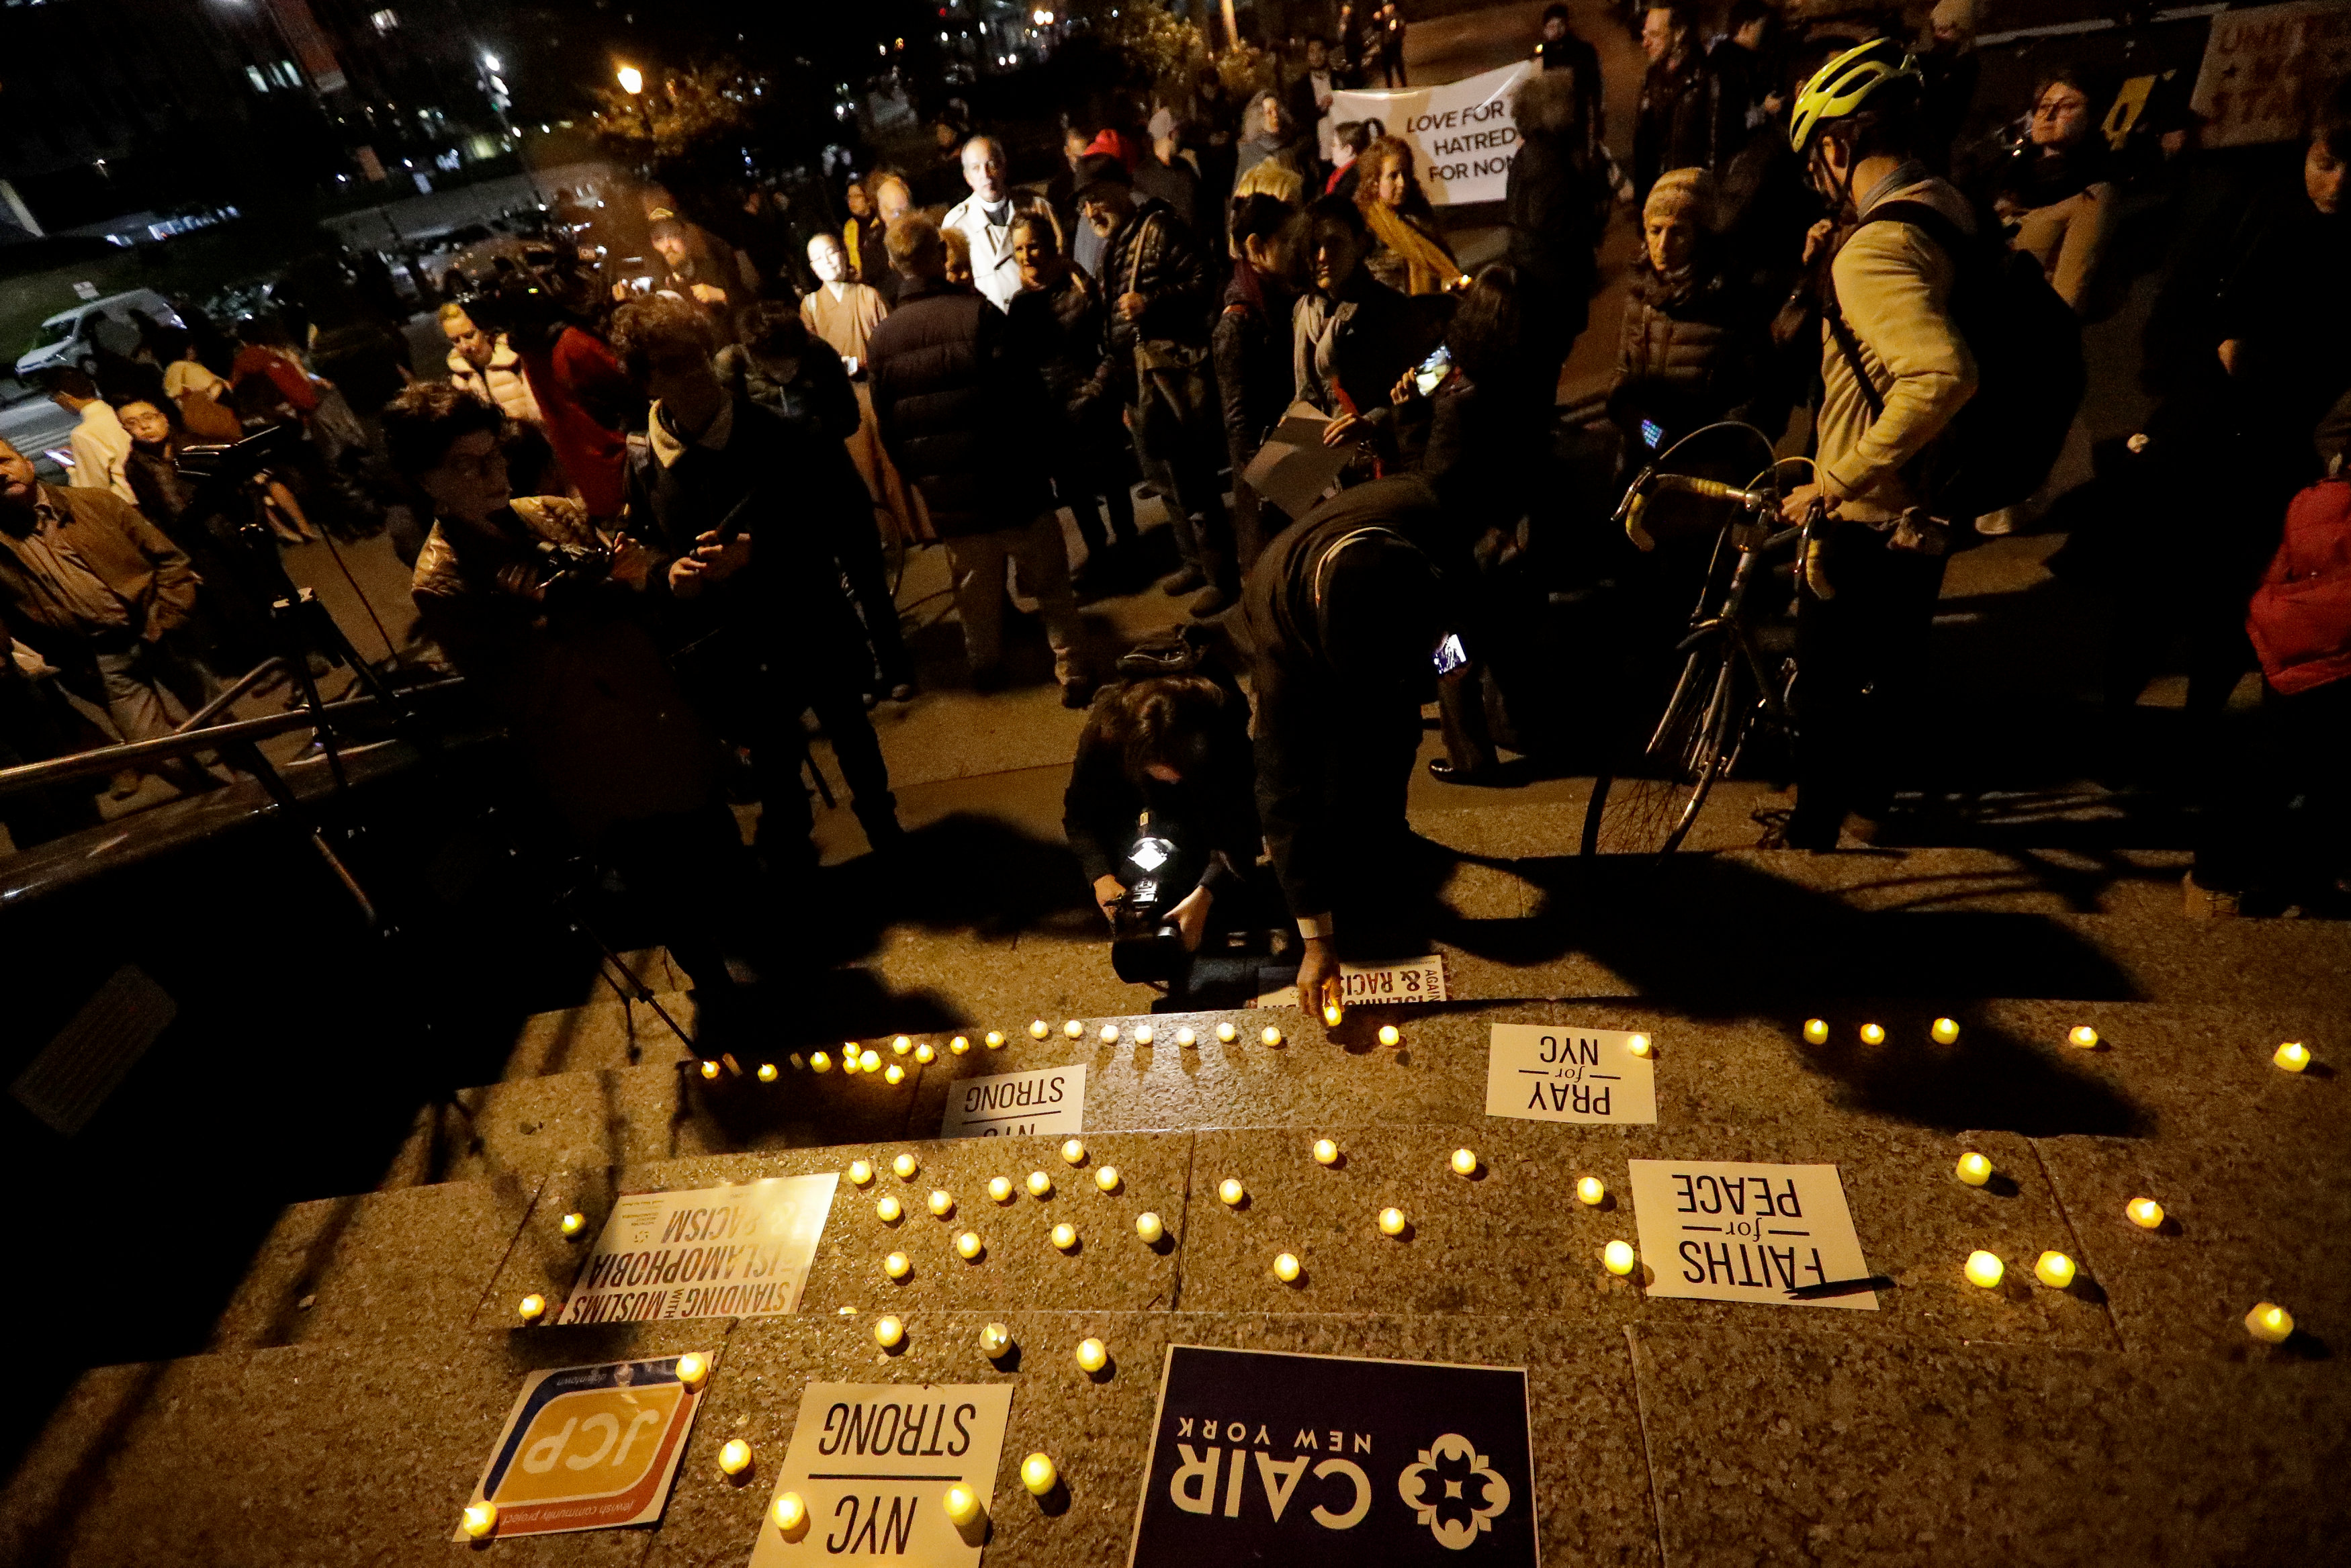 Candles are seen during a vigil for victims of the pickup truck attack at Foley Square in New York City, U.S., November 1, 2017